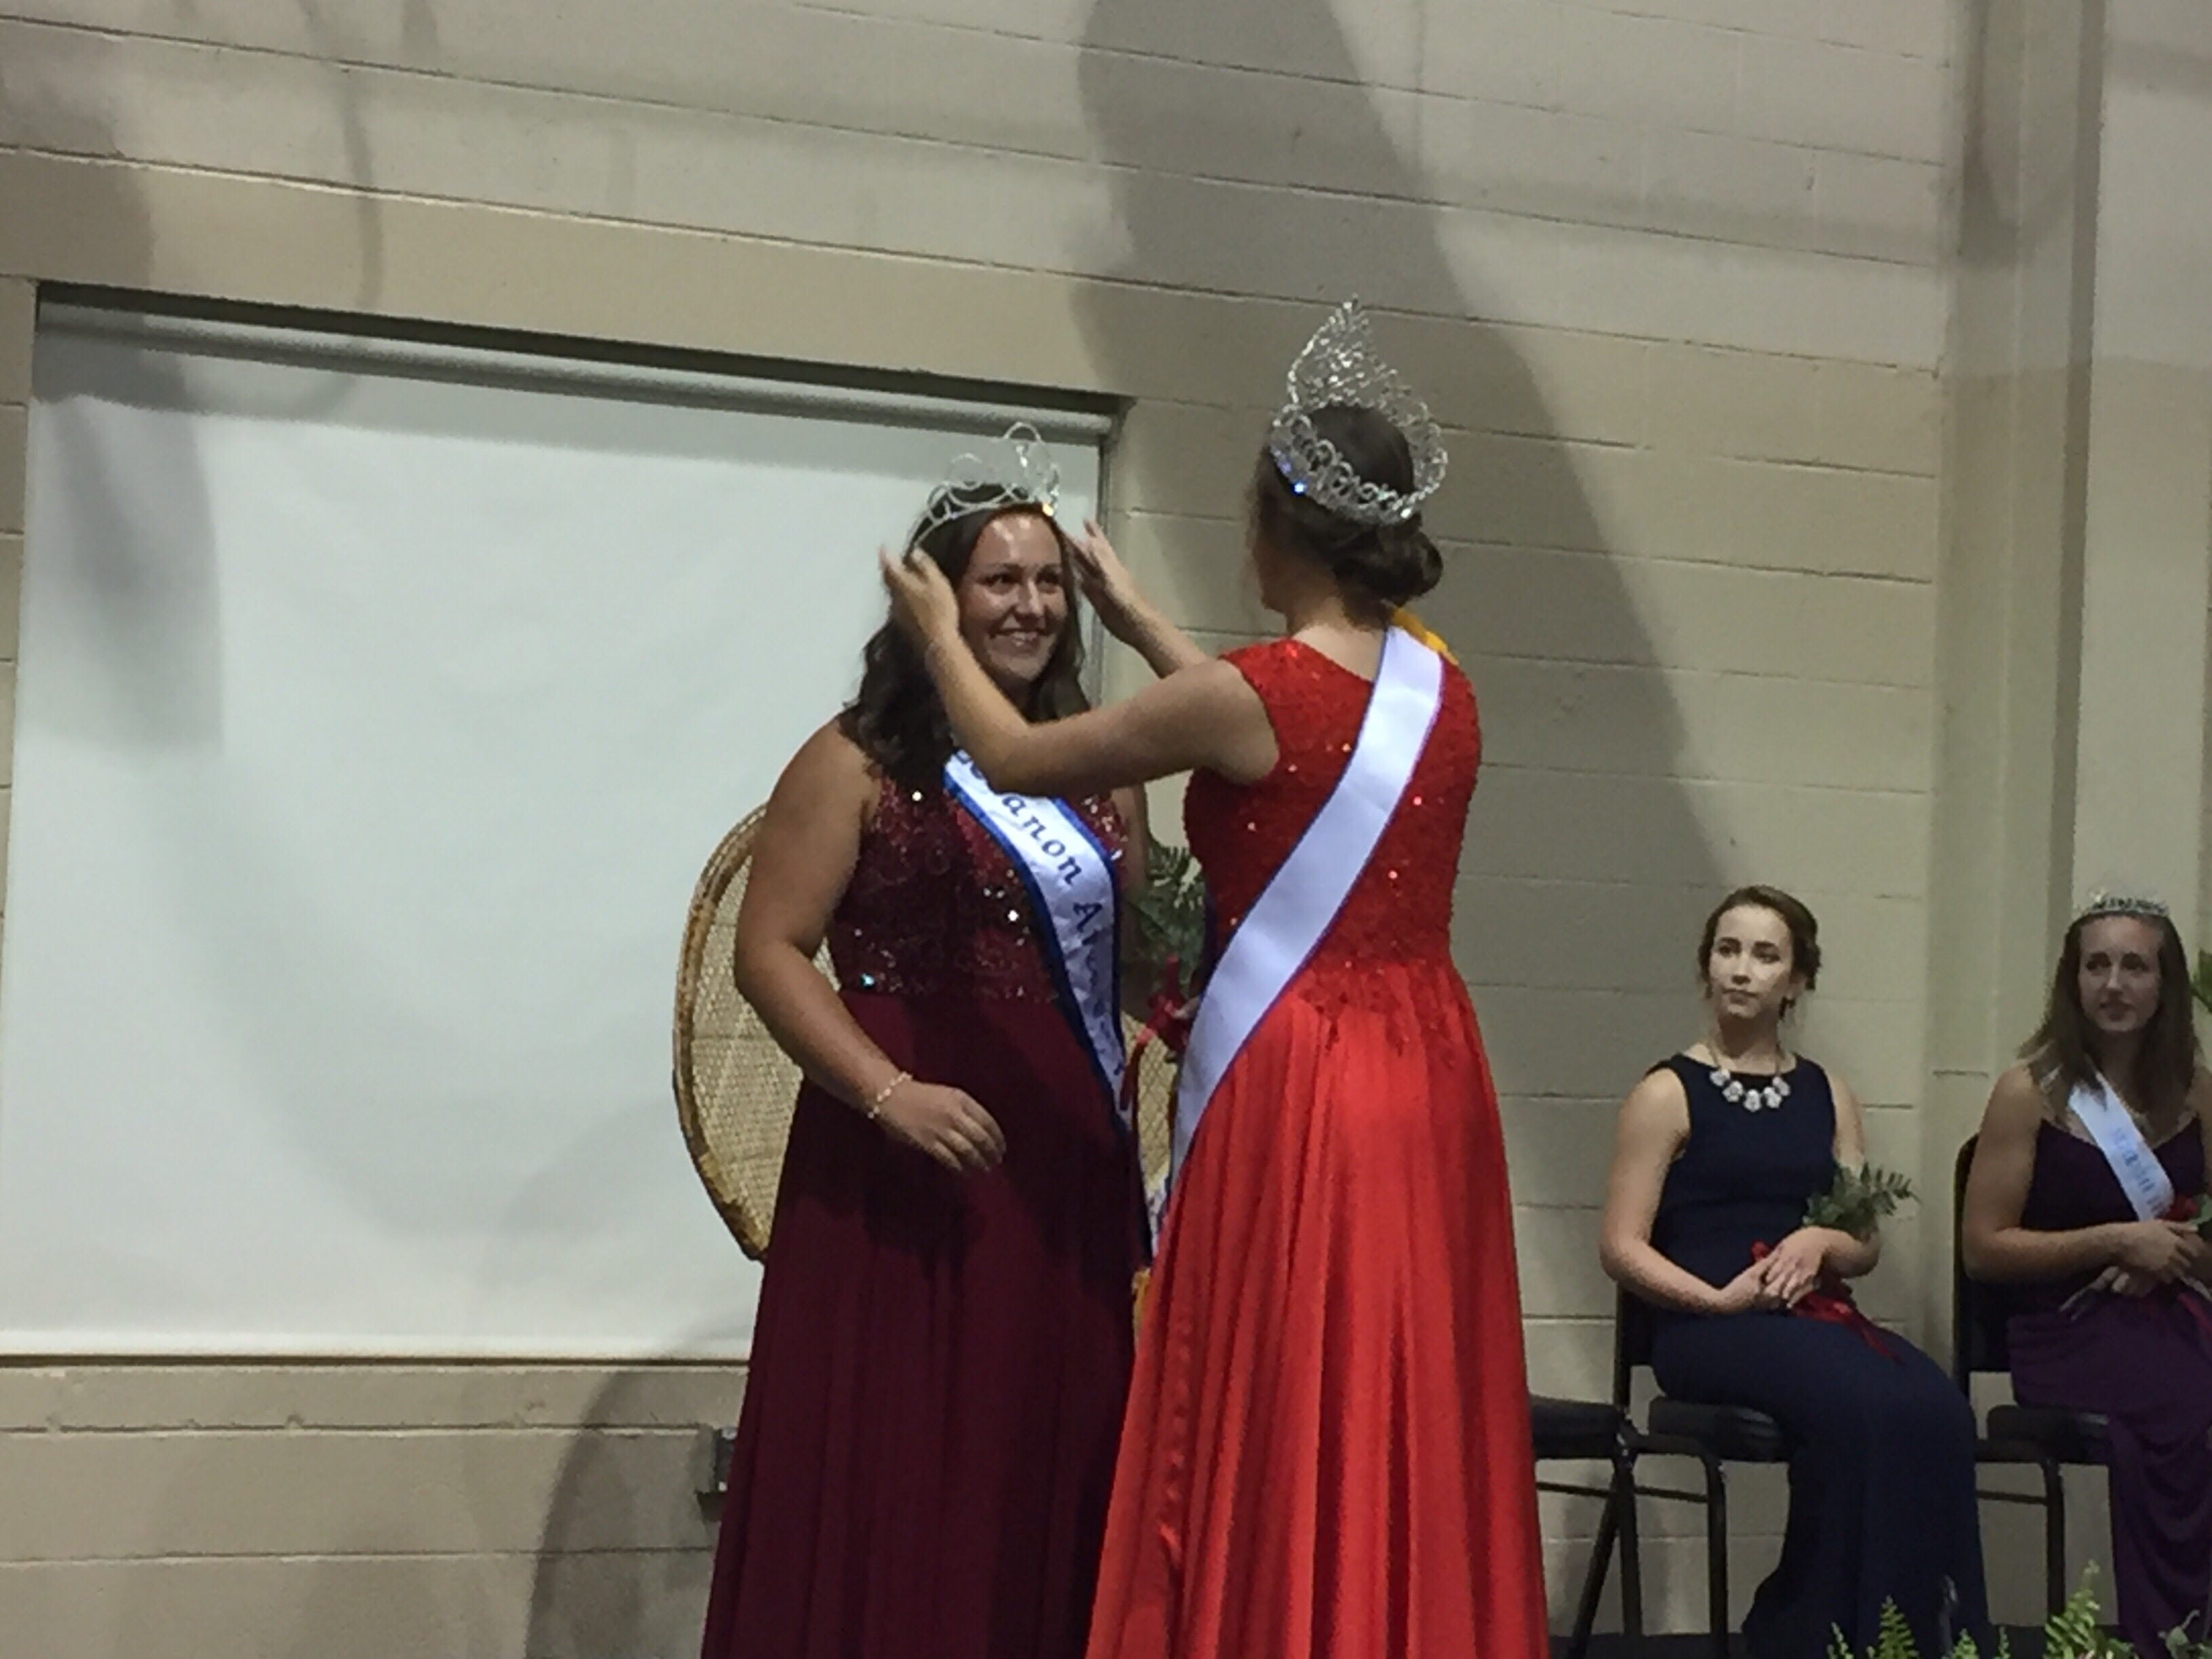 2017 Lebanon Fair Queen Liz Voight (right) crowns the 2018 winner, Madison Hetrick.